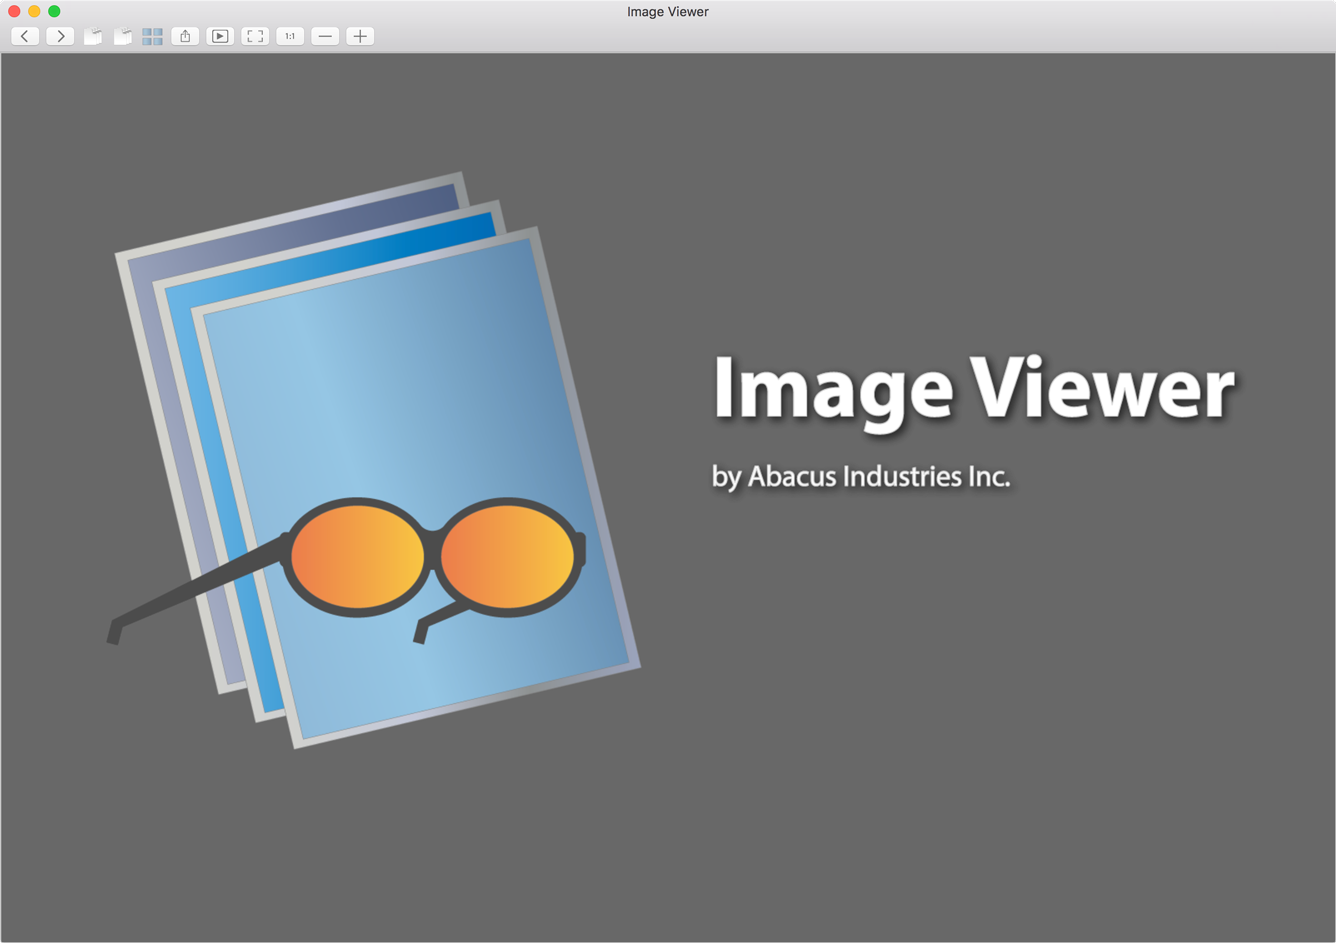 how to make image viewer in java